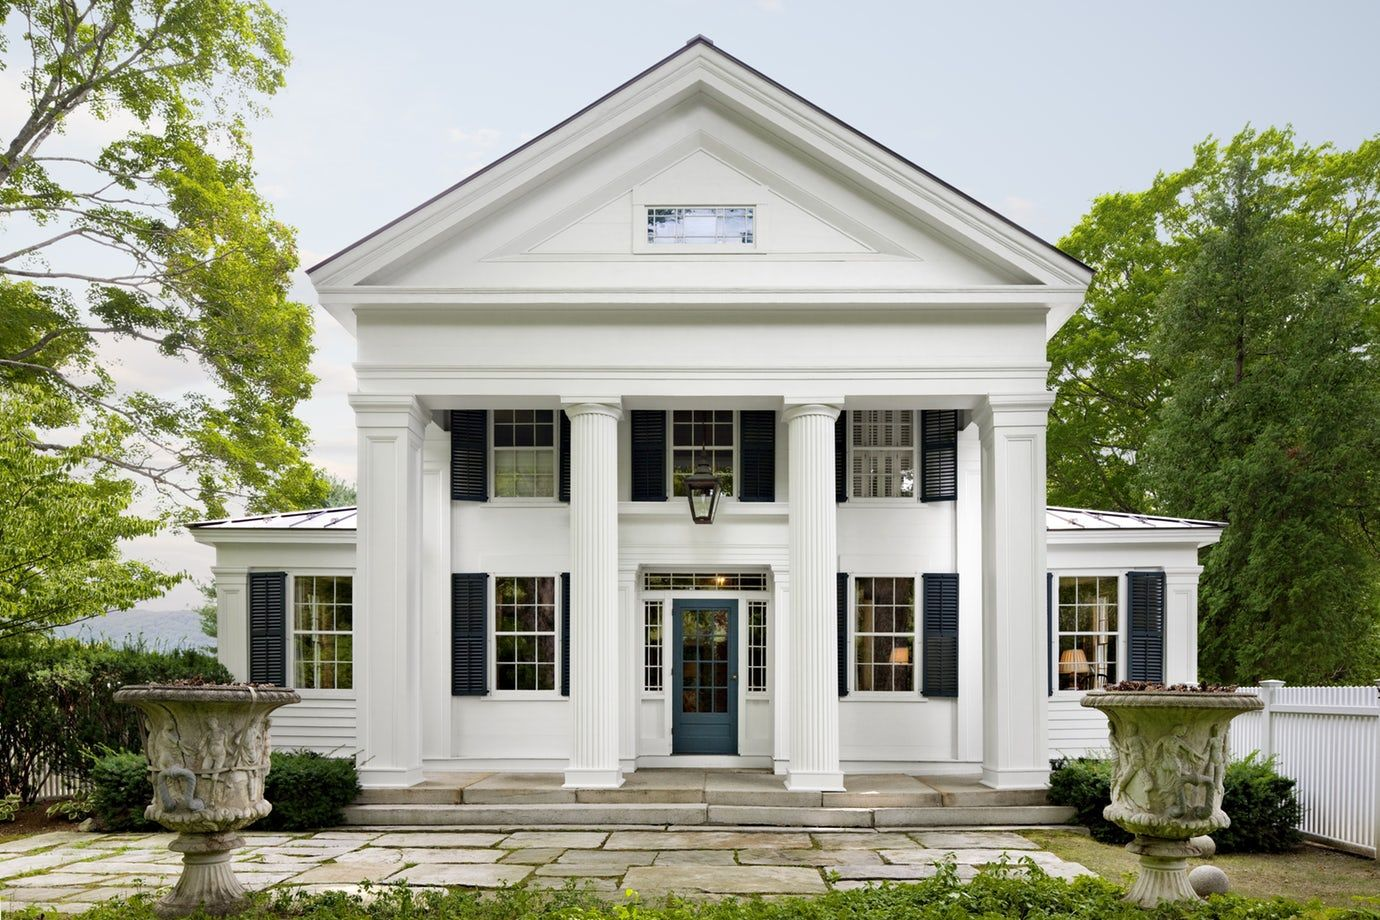 Entry Portico Of Restored Greek Revival House Colonial Federal Greek Revival Neocla Greek Revival Architecture Greek Revival Home Modern Farmhouse Exterior